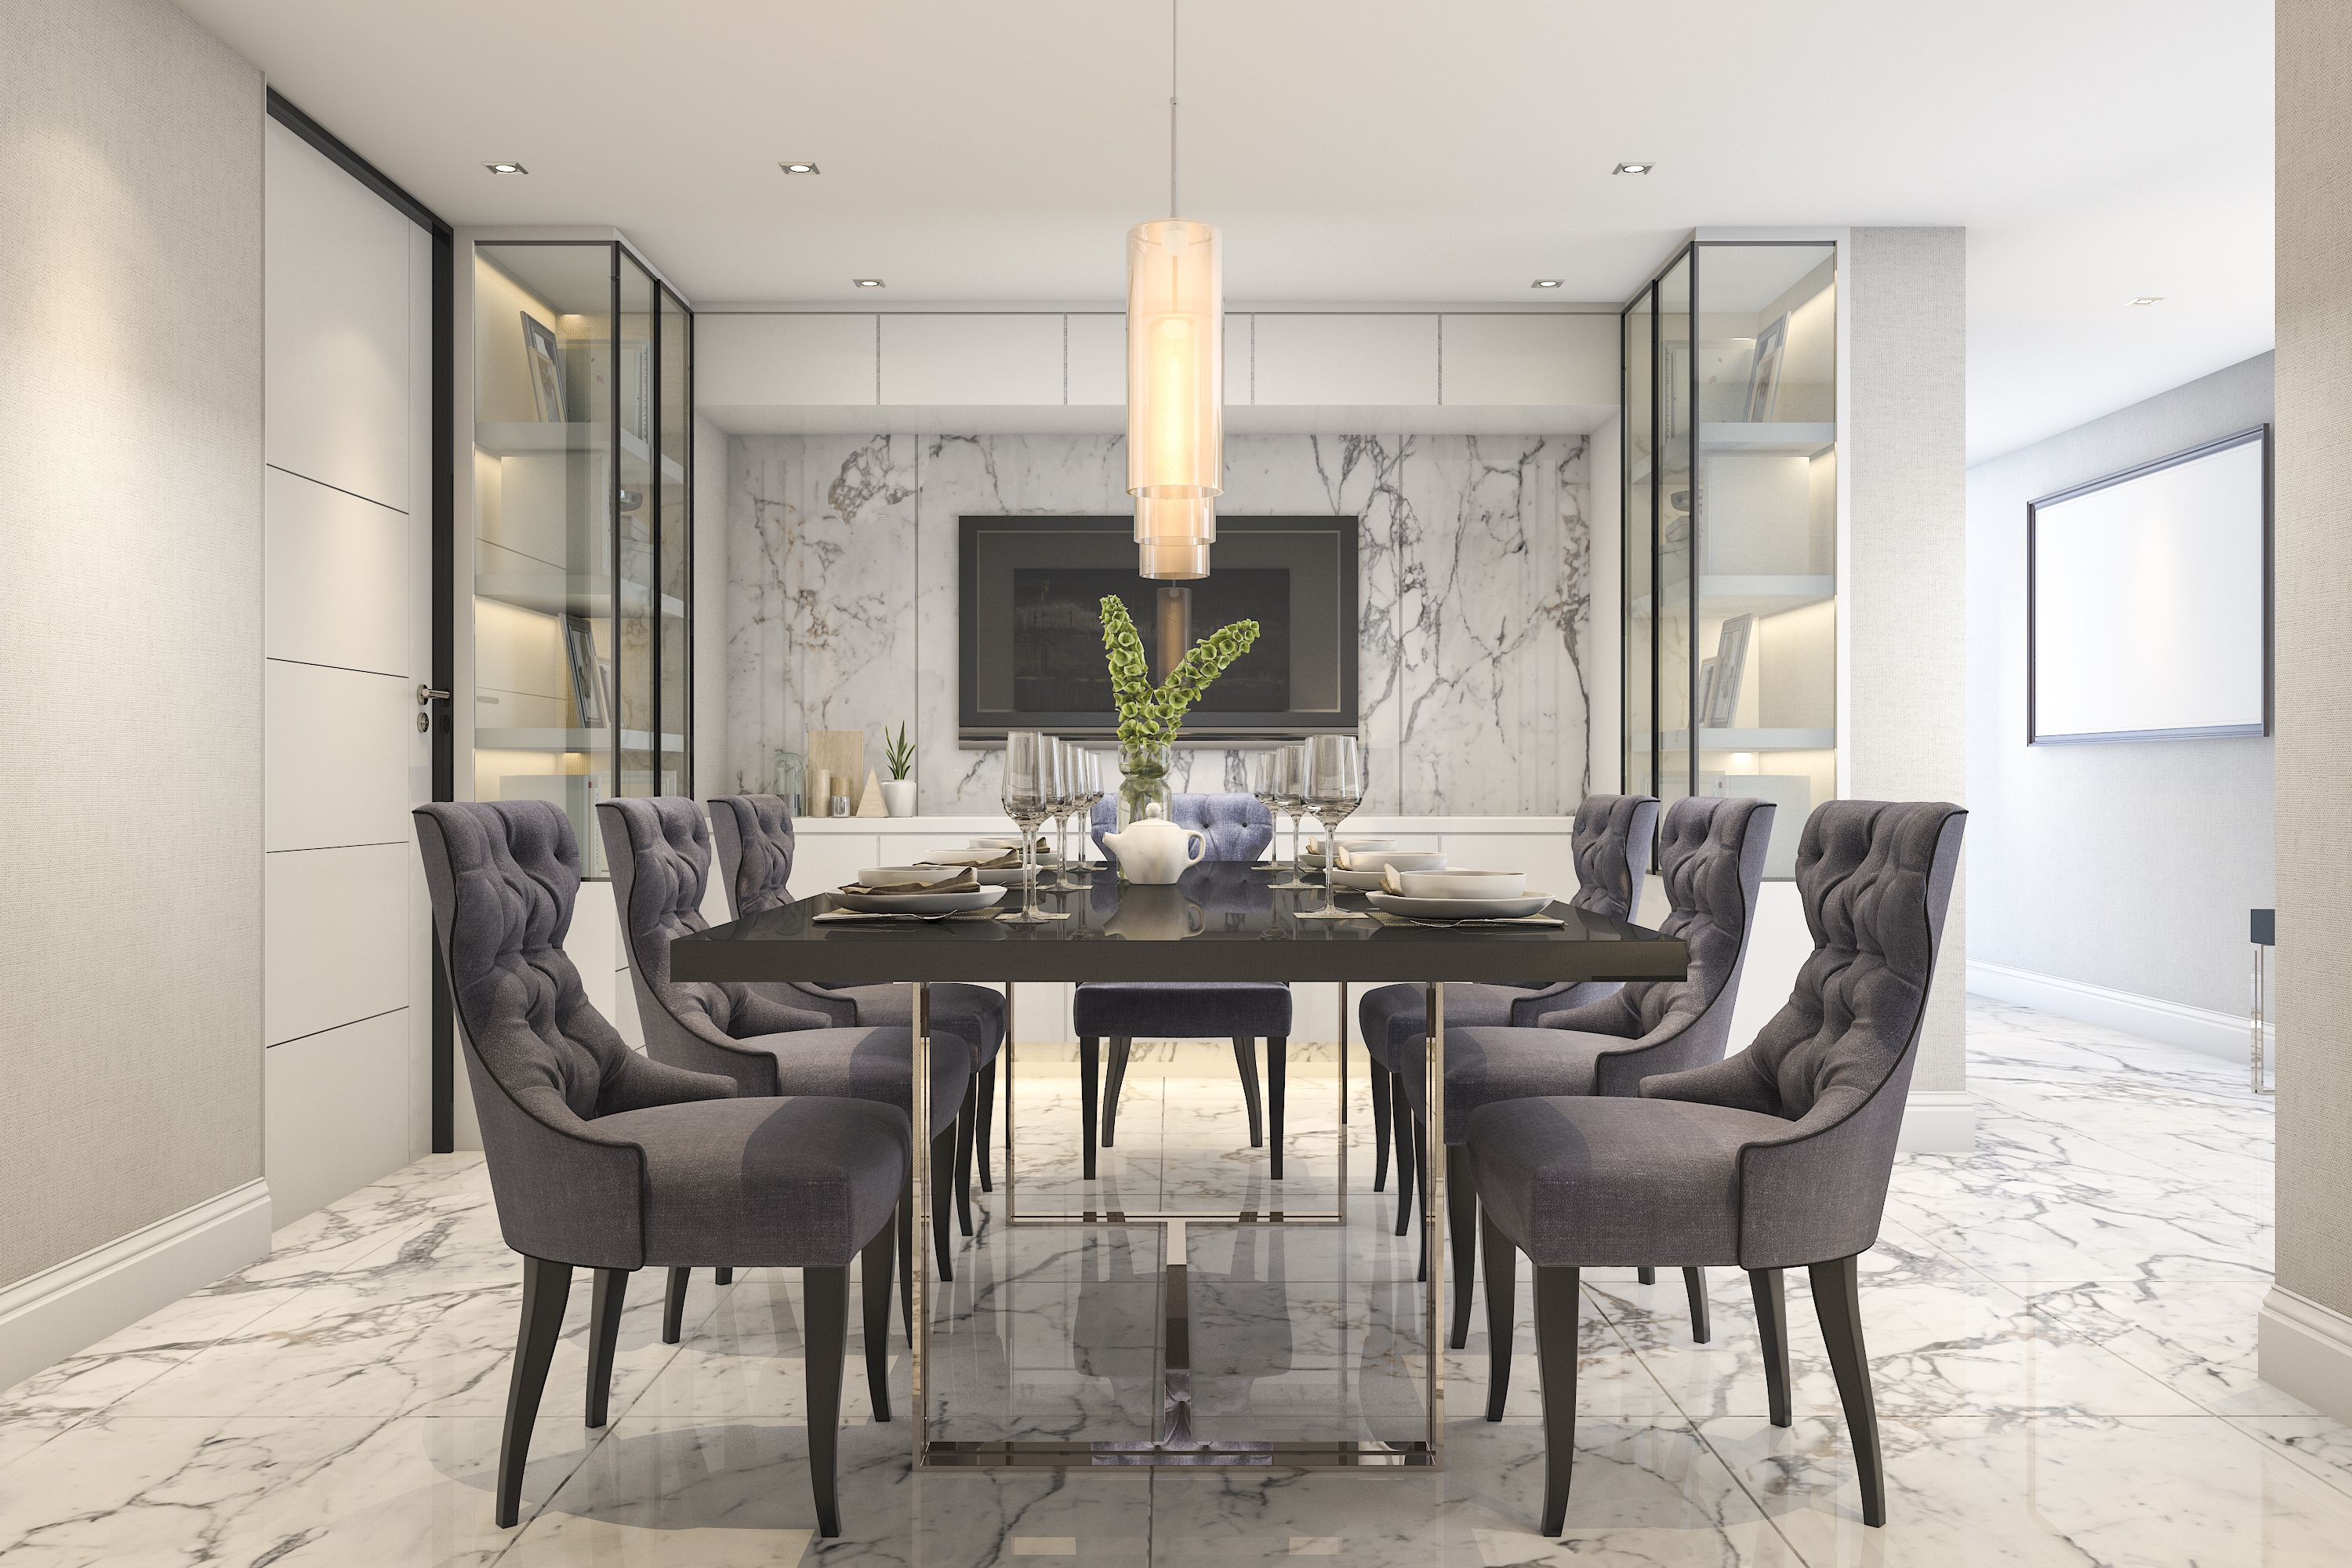 pics of dining room furniture | 25 Gray Dining Room Design Ideas